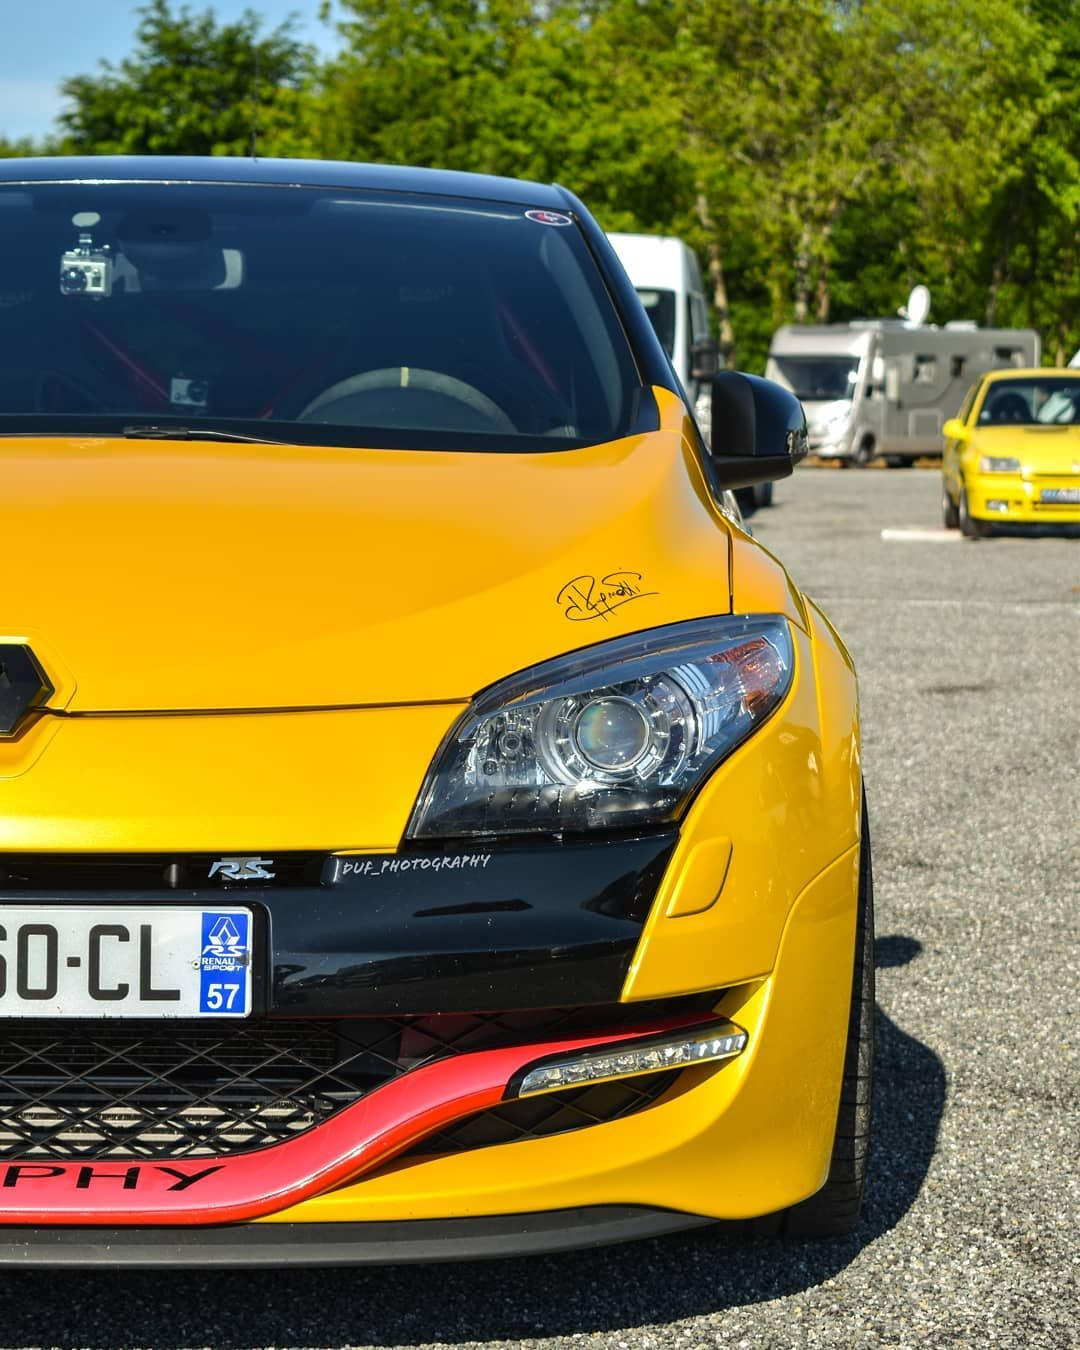 Renault Megane 3 Rs Phase 2 2 0 T 16v Rs 265 Chevaux Edition Trophy Photo 3 3 Pic Picofth Renault Megane Renault Japanese Cars